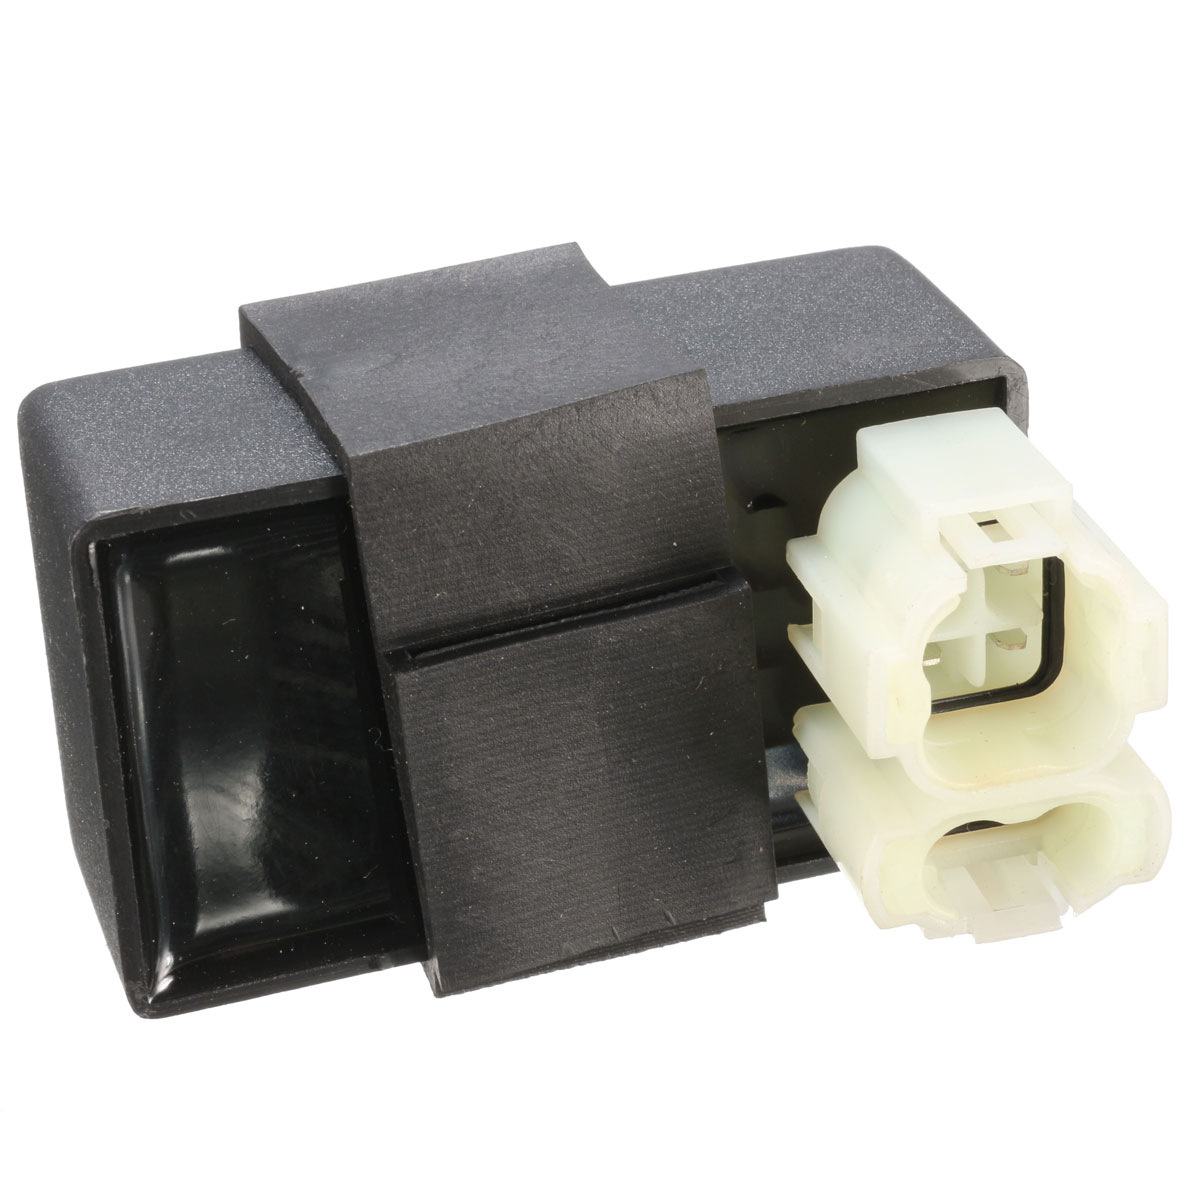 Air Filter+Performance CDI+Ignition Coil+Spark Plug For Gy6 PD 24J 150cc Motorcycle